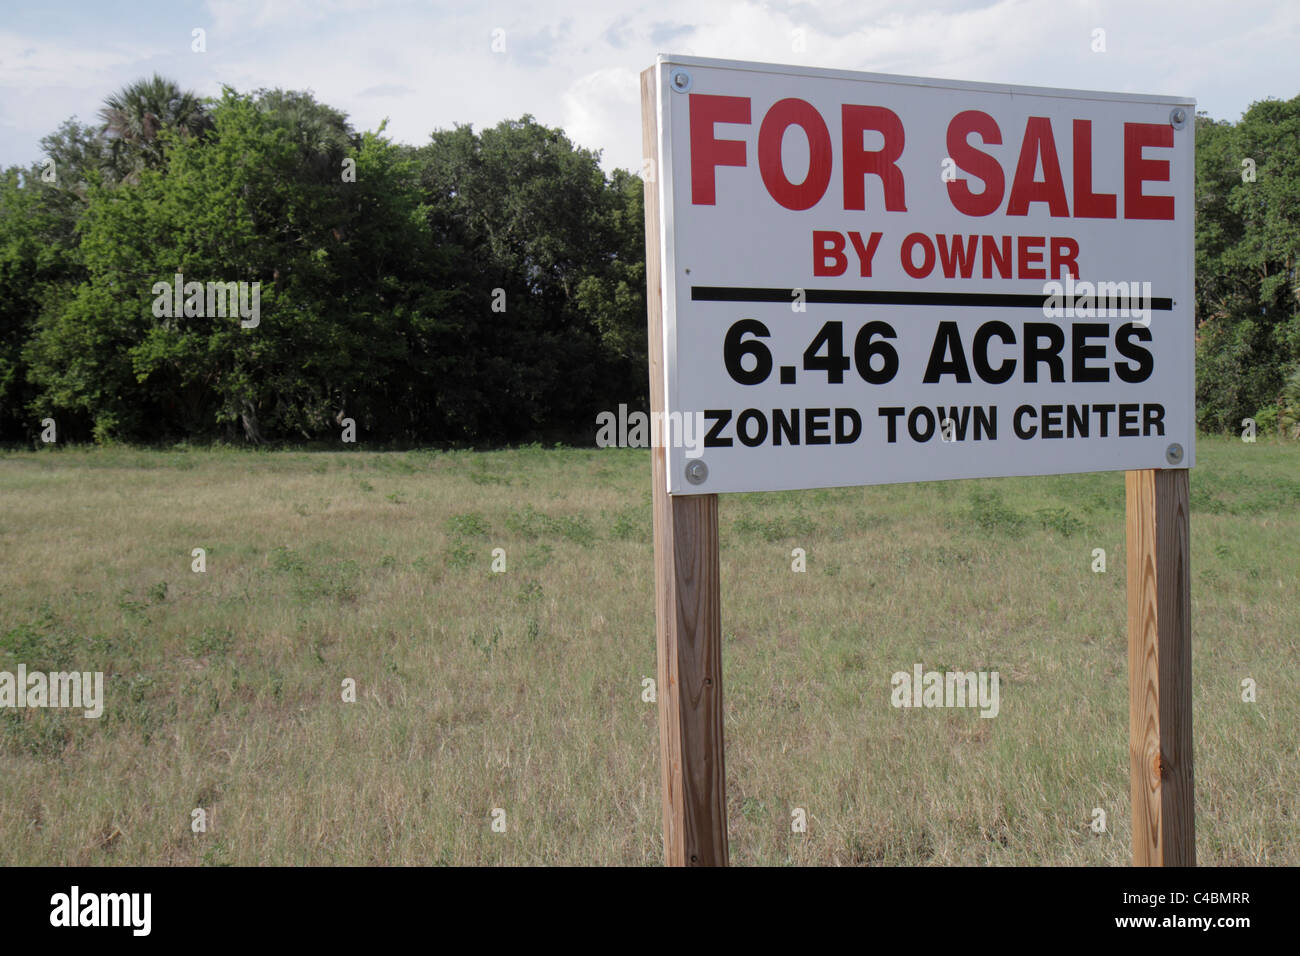 Orlando florida winter springs land for sale sign by owner zoned town center field trees